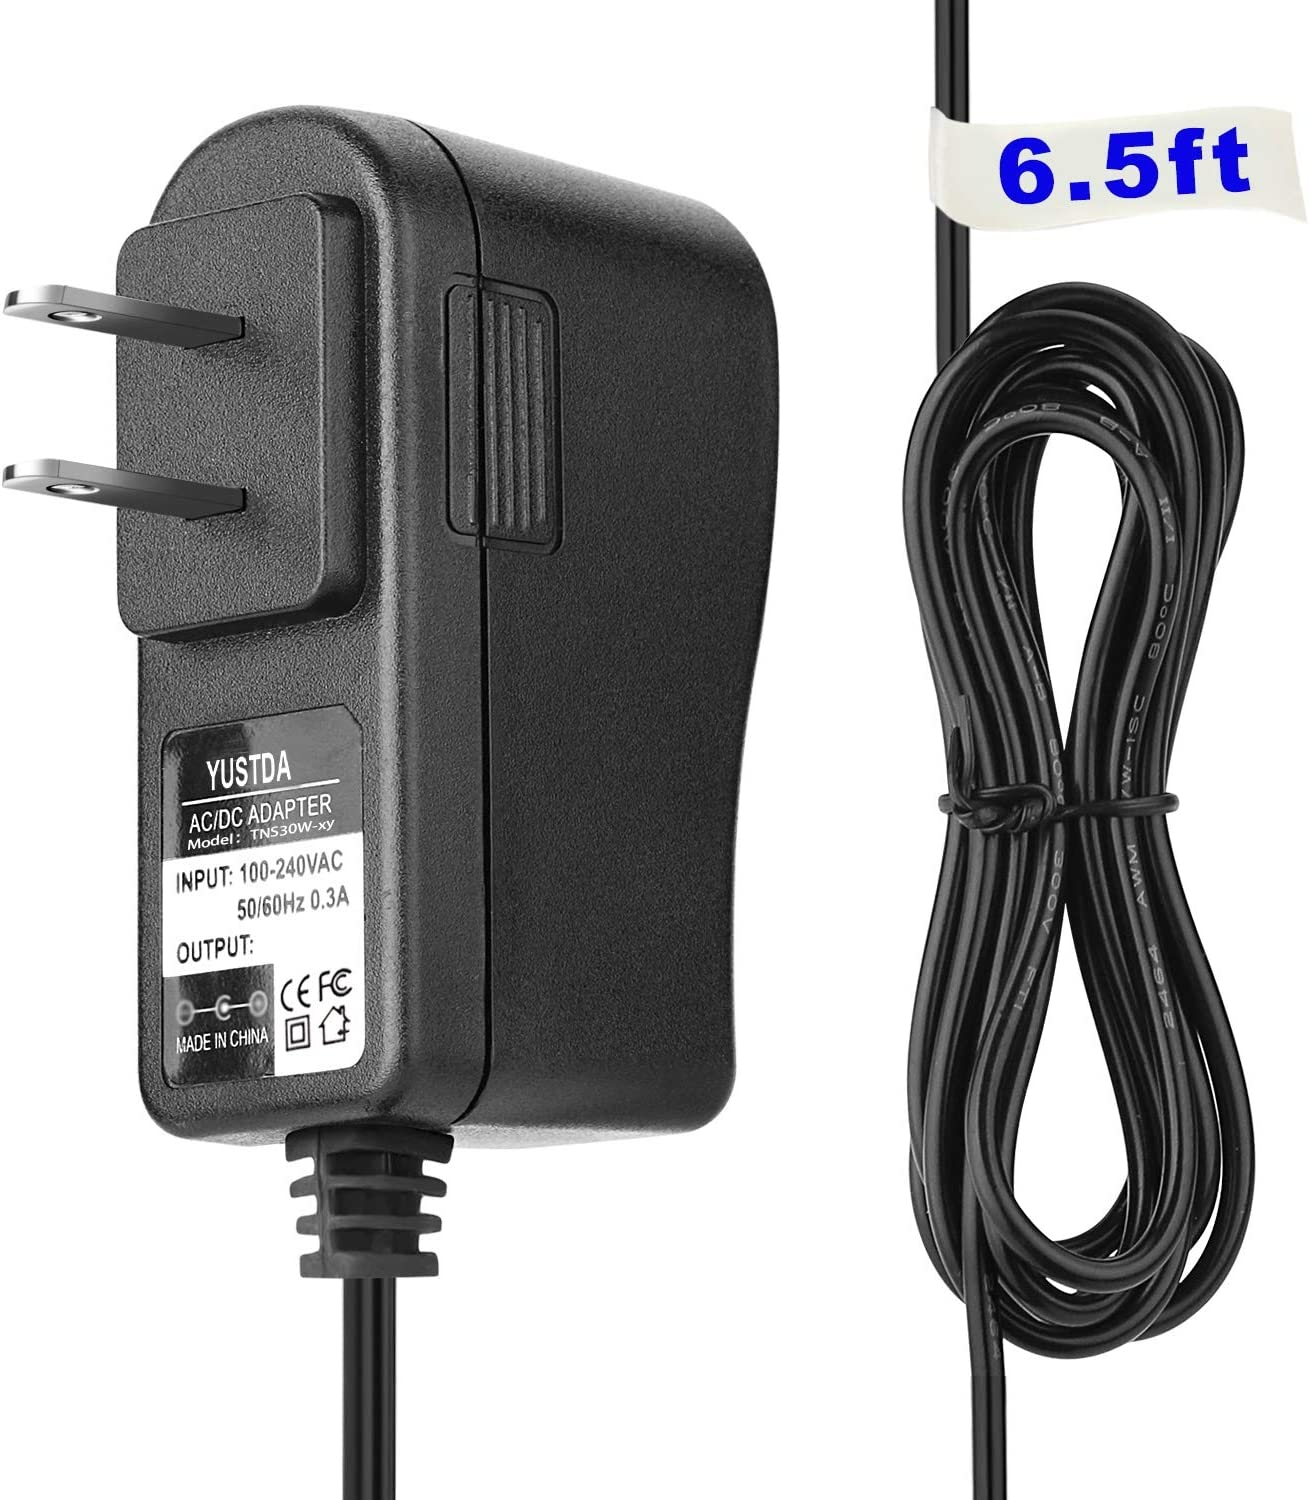 4.5V AC/DC Adapter Replacement for Sony N50 AC-E454 AC-ES455 D-NF340 D-NF341 D-FJ040 D-FJ75TR D-EJ621 D-EJ721 D-EJ368CK D-EJ616CK D-FJ D-SJ D-FS D-ES D-CJ D-EJ D-CS D-E885 ICF-M410 ICF-SW40